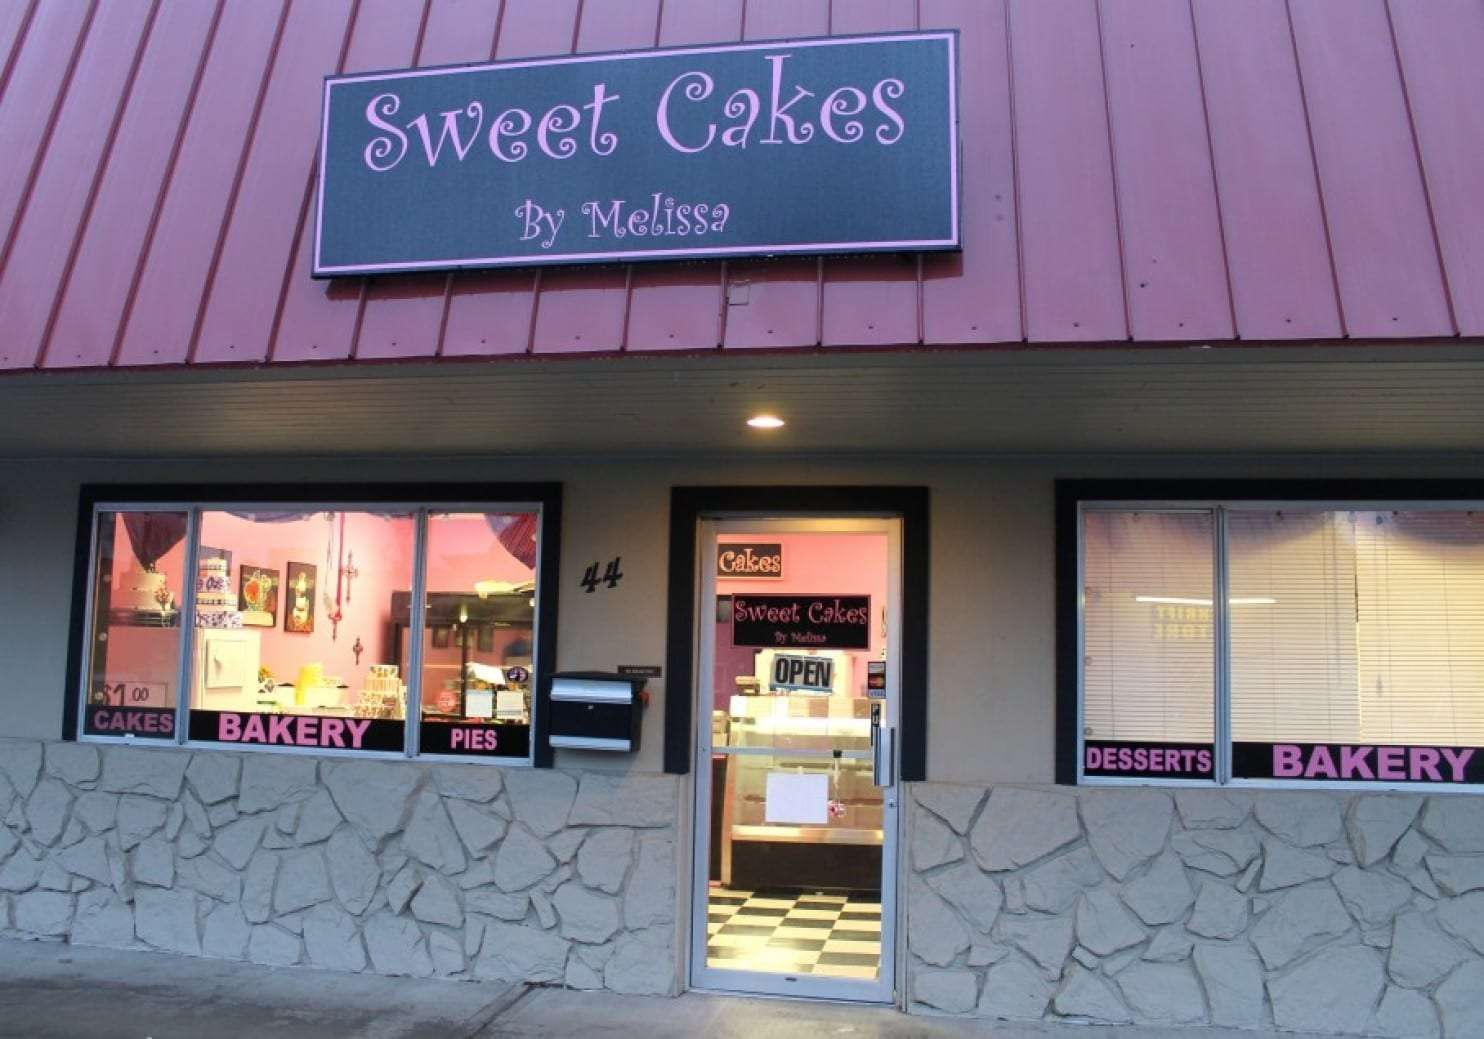 This Feb. 5, 2013, photo shows Sweet Cakes by Melissa in Gresham, Ore. The bakers cited their religious beliefs in a case that has been cited in the national debate over religious freedom and discrimination against gays. (Everton Bailey Jr./The Oregonian via AP)